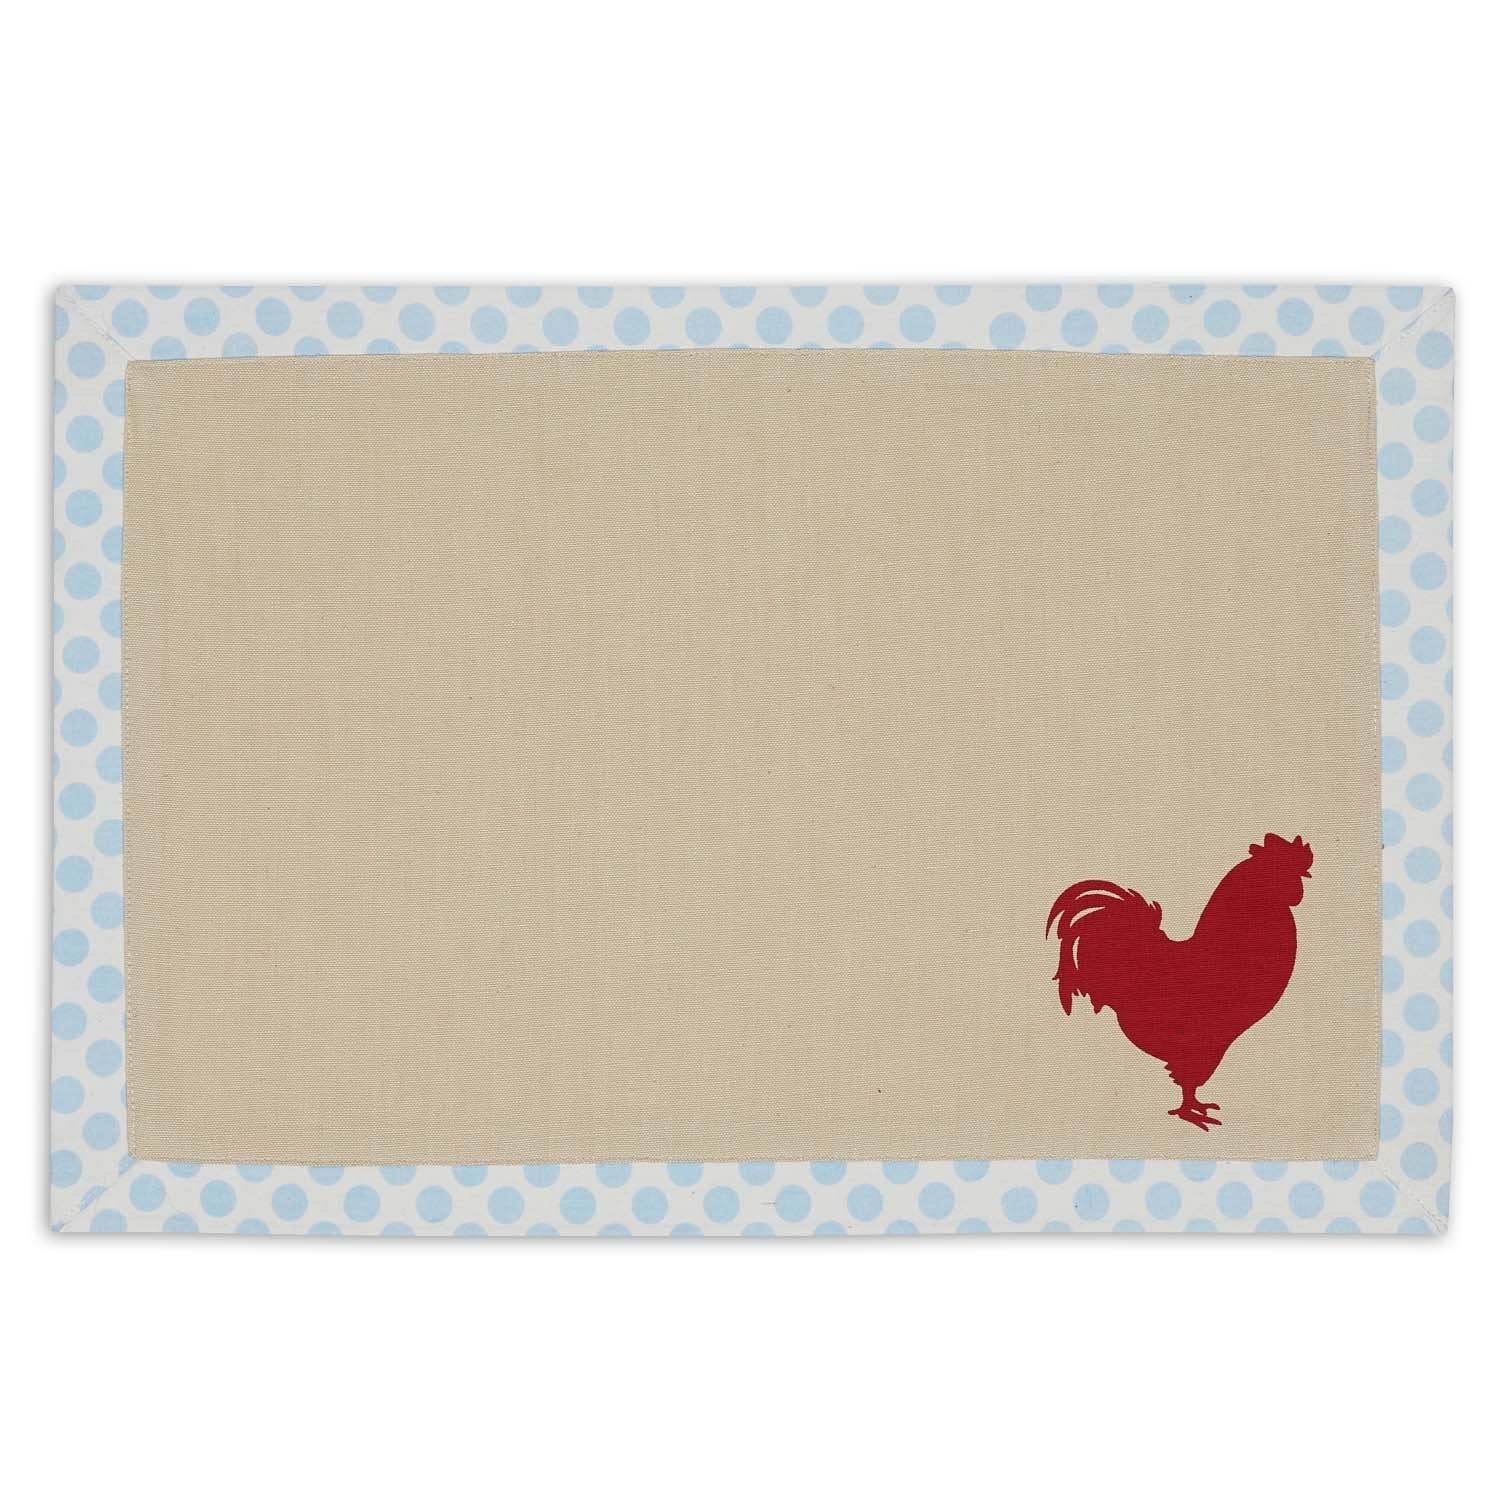 DII 100% Cotton, Printed Everyday Basic Placemats, Fused and Lined 13x19'' Set of 4 - Red Rooster